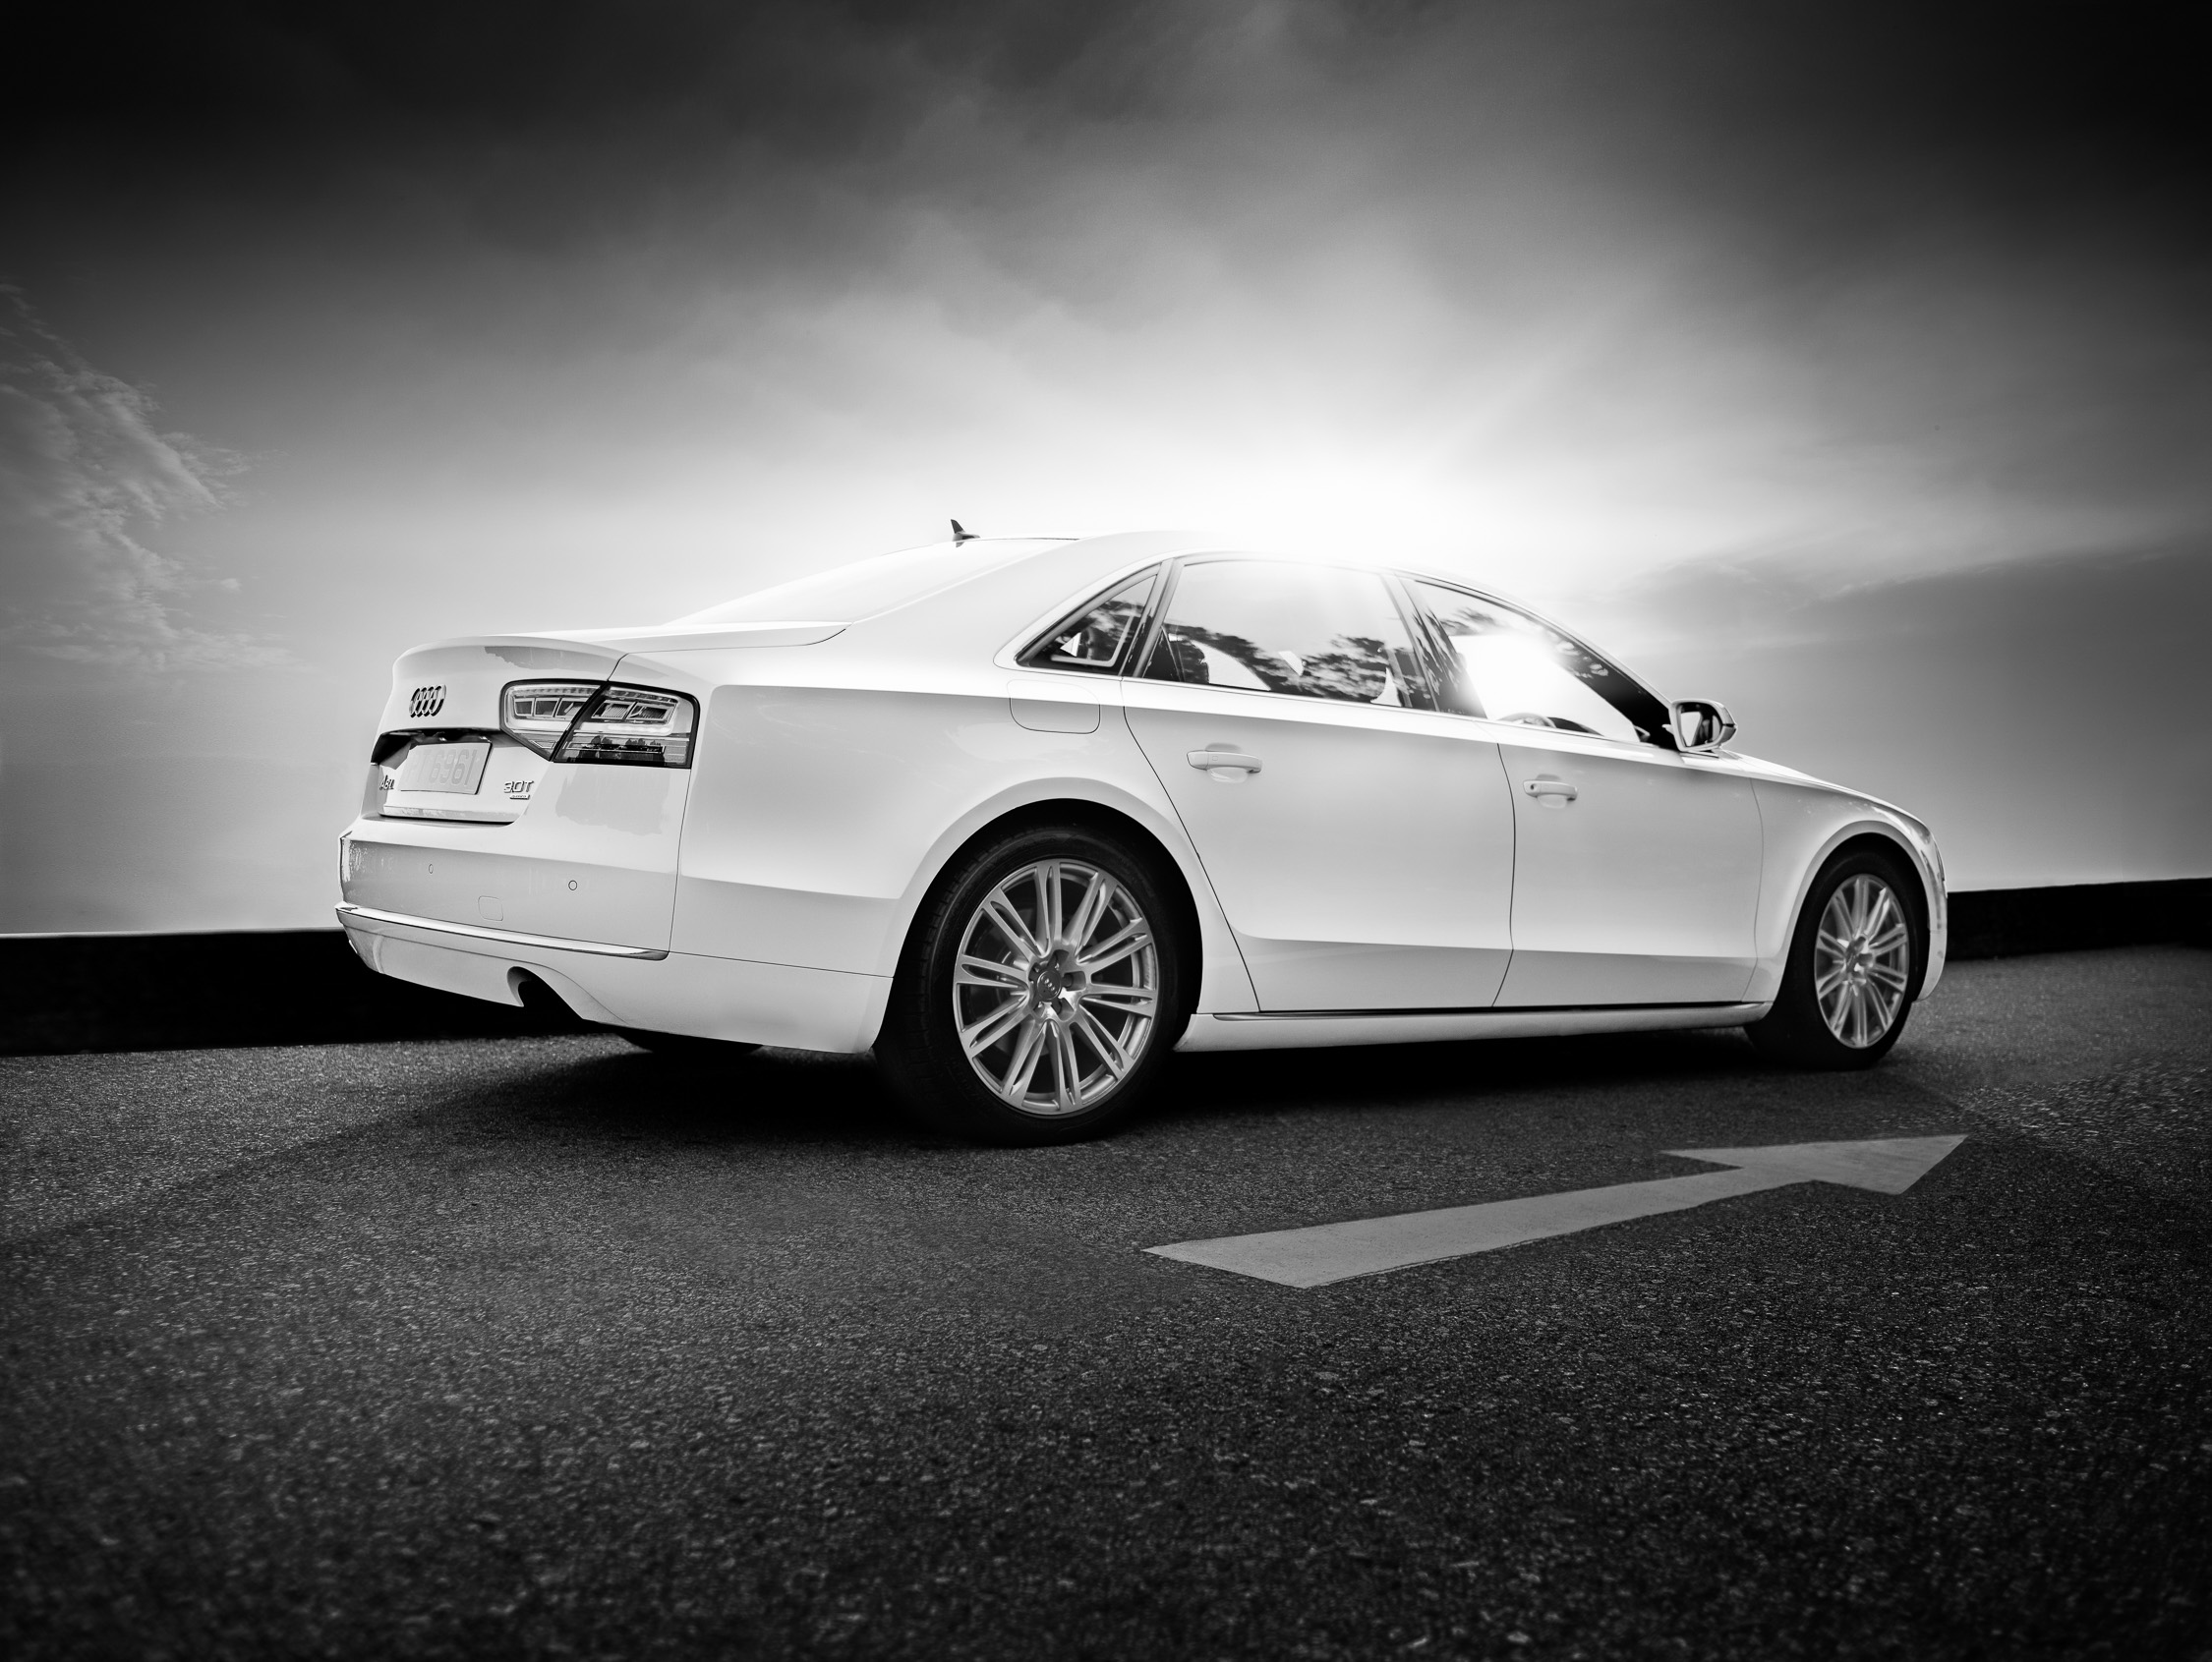 migs-foto-cgi-hong-kong-car-automotive-photography-photographer-Prestige-Audi-A8-2012-side-profile-sunset-2K